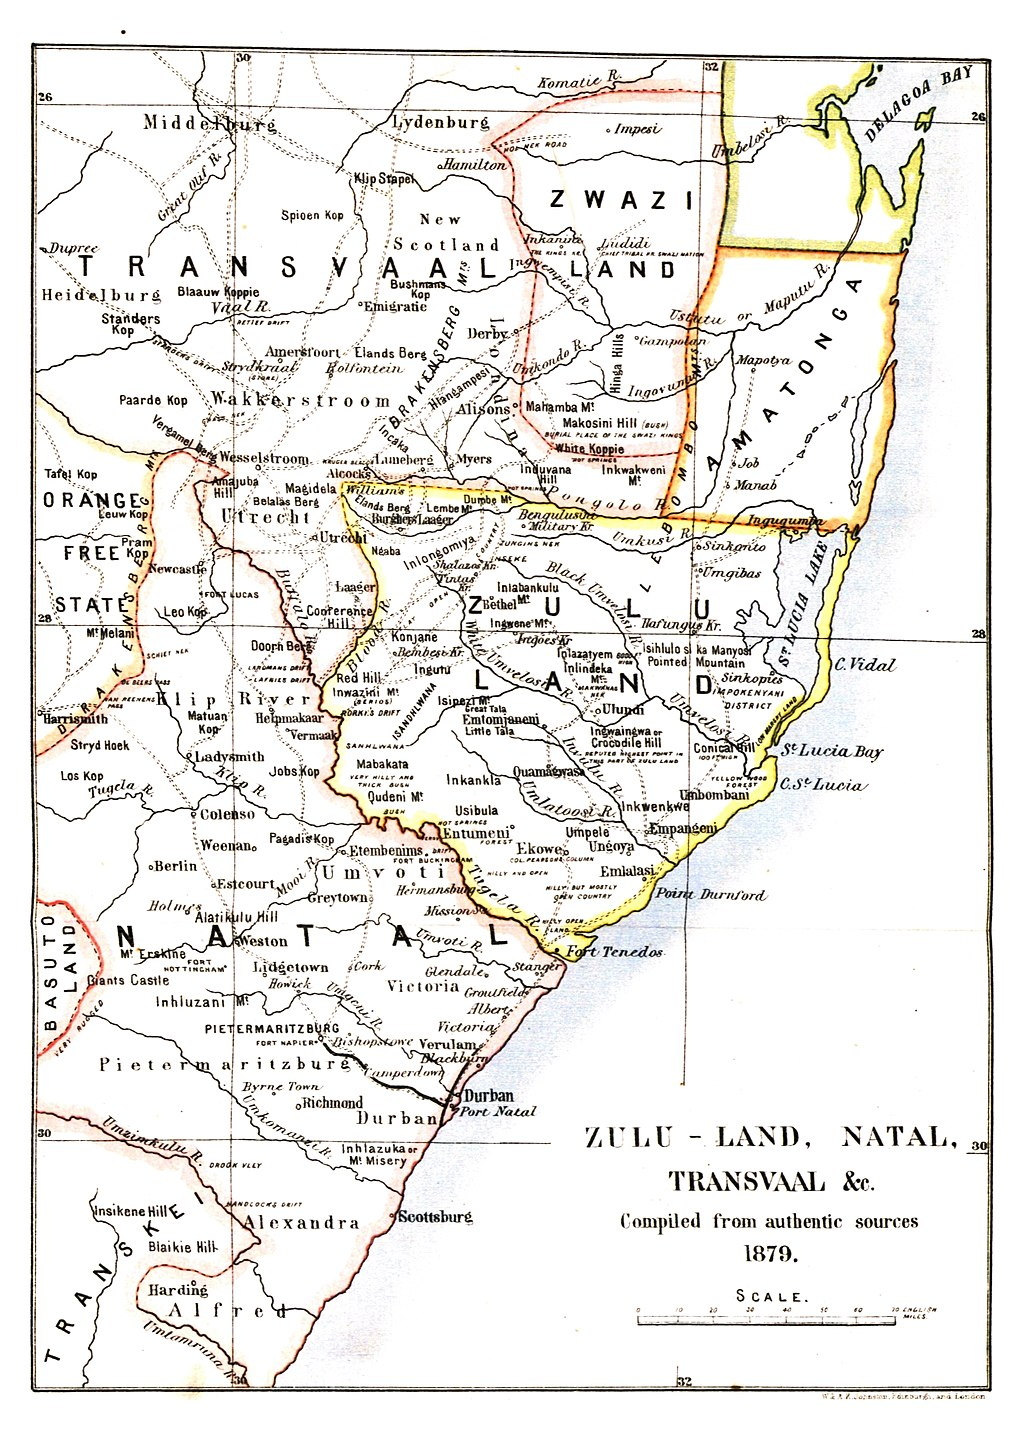 1024px-Map_of_Zululand,_Natal,_Transvaal_(1879)